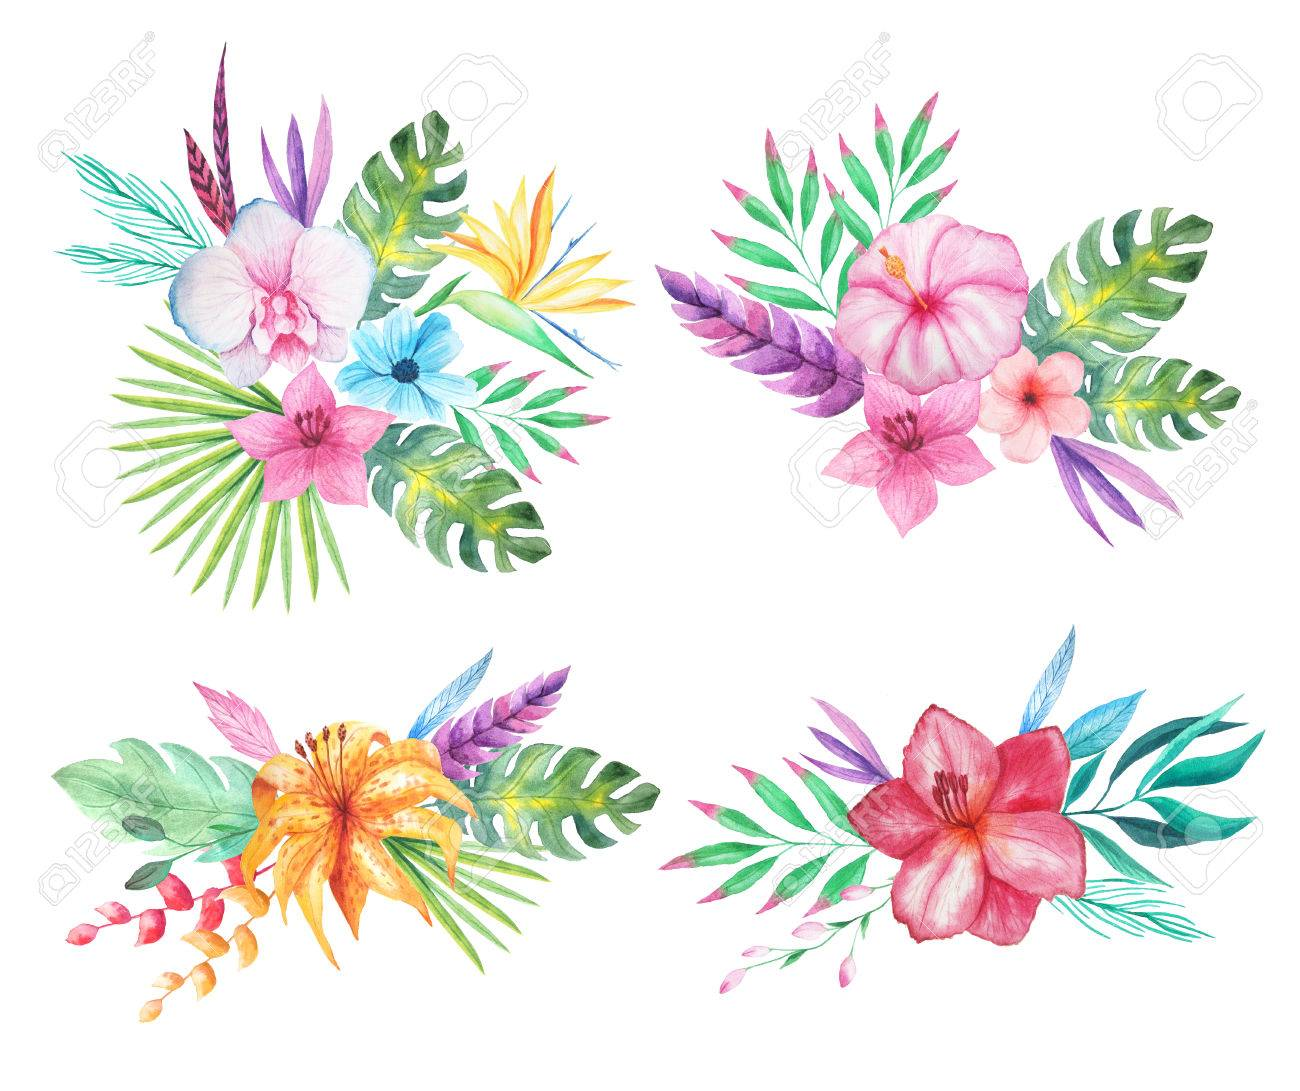 Set of Watercolor hand painted tropical flowers, leaves and plants.